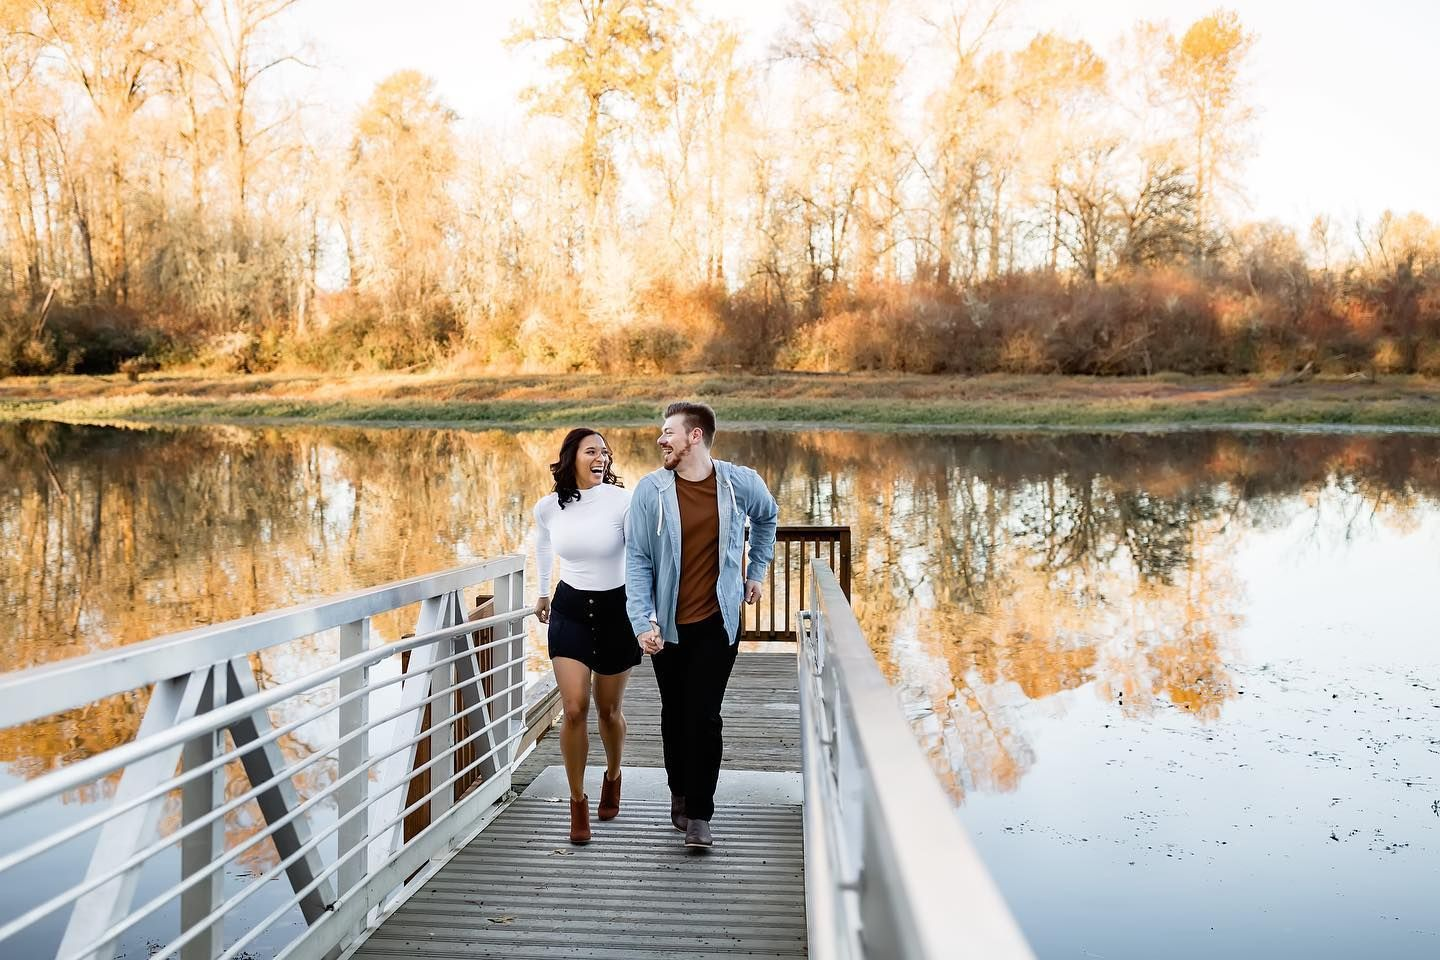 Today these two will be running into their future married y'all!!! So excited to be a part of your big day Jordan + Ethan! Let's get y'all hitched!!! ⠀ ⠀ ⠀ ⠀ #oregonbride #oregonbridemag #oregonwedding #oregonweddingphotographer #oregonweddingphotography #corvallis #corvallisoregon #salem #salemoregon  #salemphotography #salemoregonphotographer #portland #portlandoregon #portlandoregonwedding #portlandweddingphotographer  #bend #bendoregon #bendweddingphotographer #eugene #eugeneoregon #eugenewe